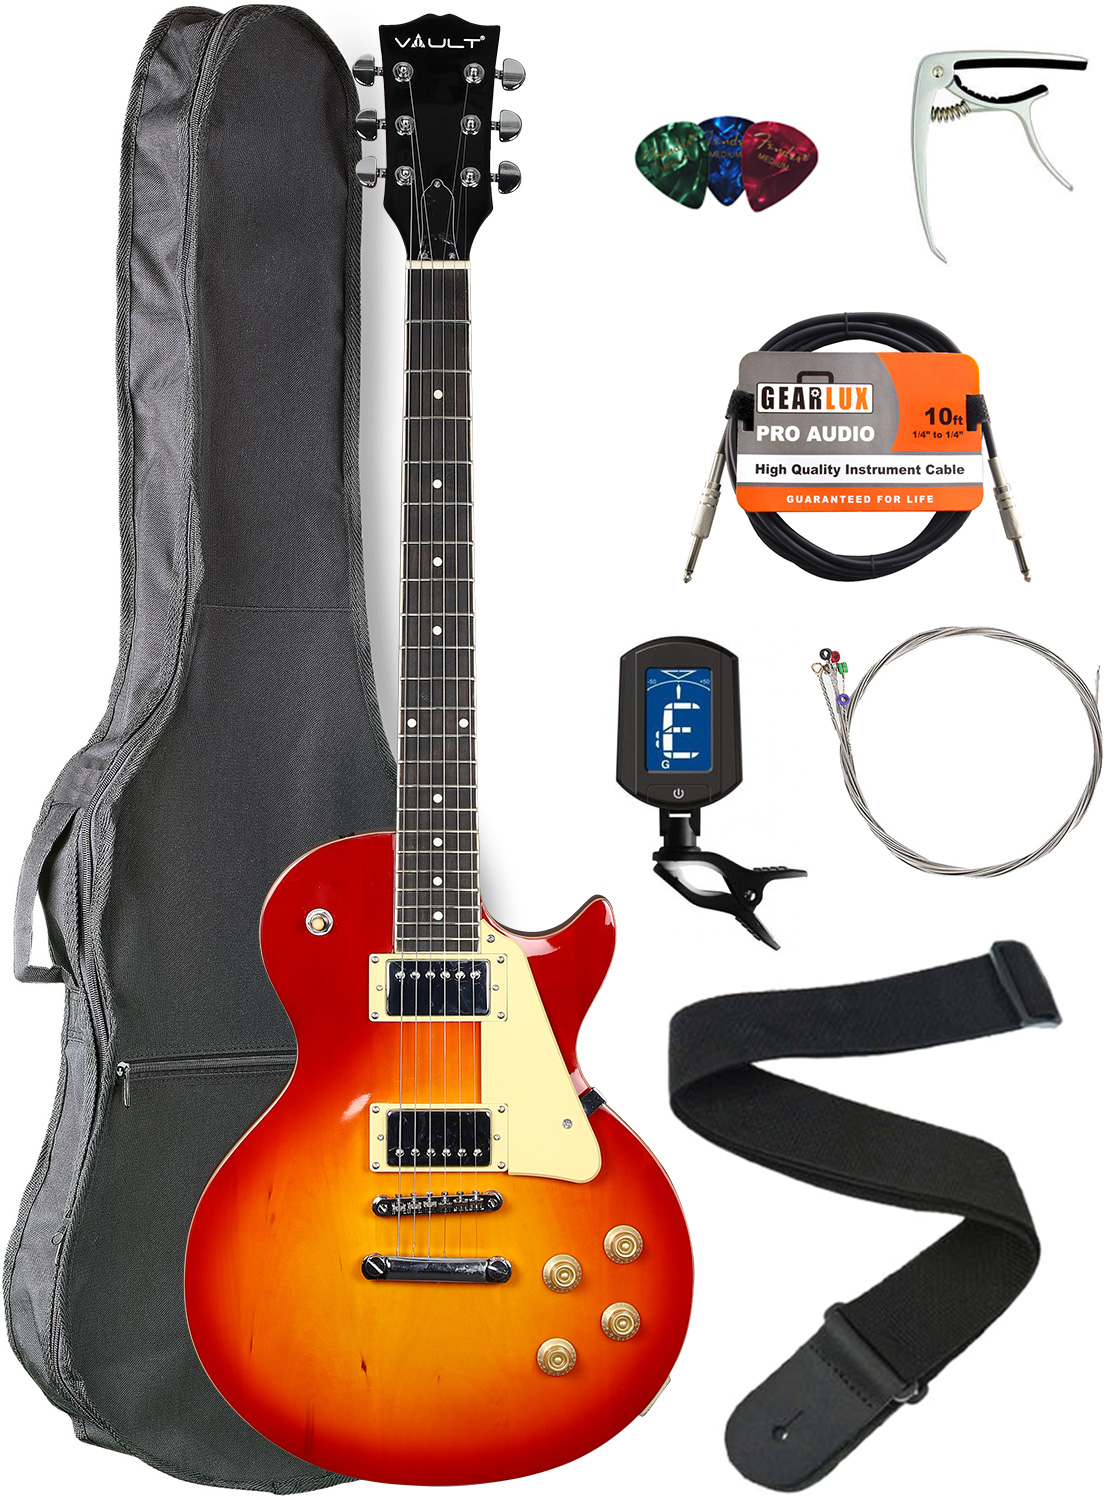 Vault-LP1-Ovangkol-Fretboard-Electric-Guitar-Cherry-Red-Burst-w-Gig-Bag thumbnail 1